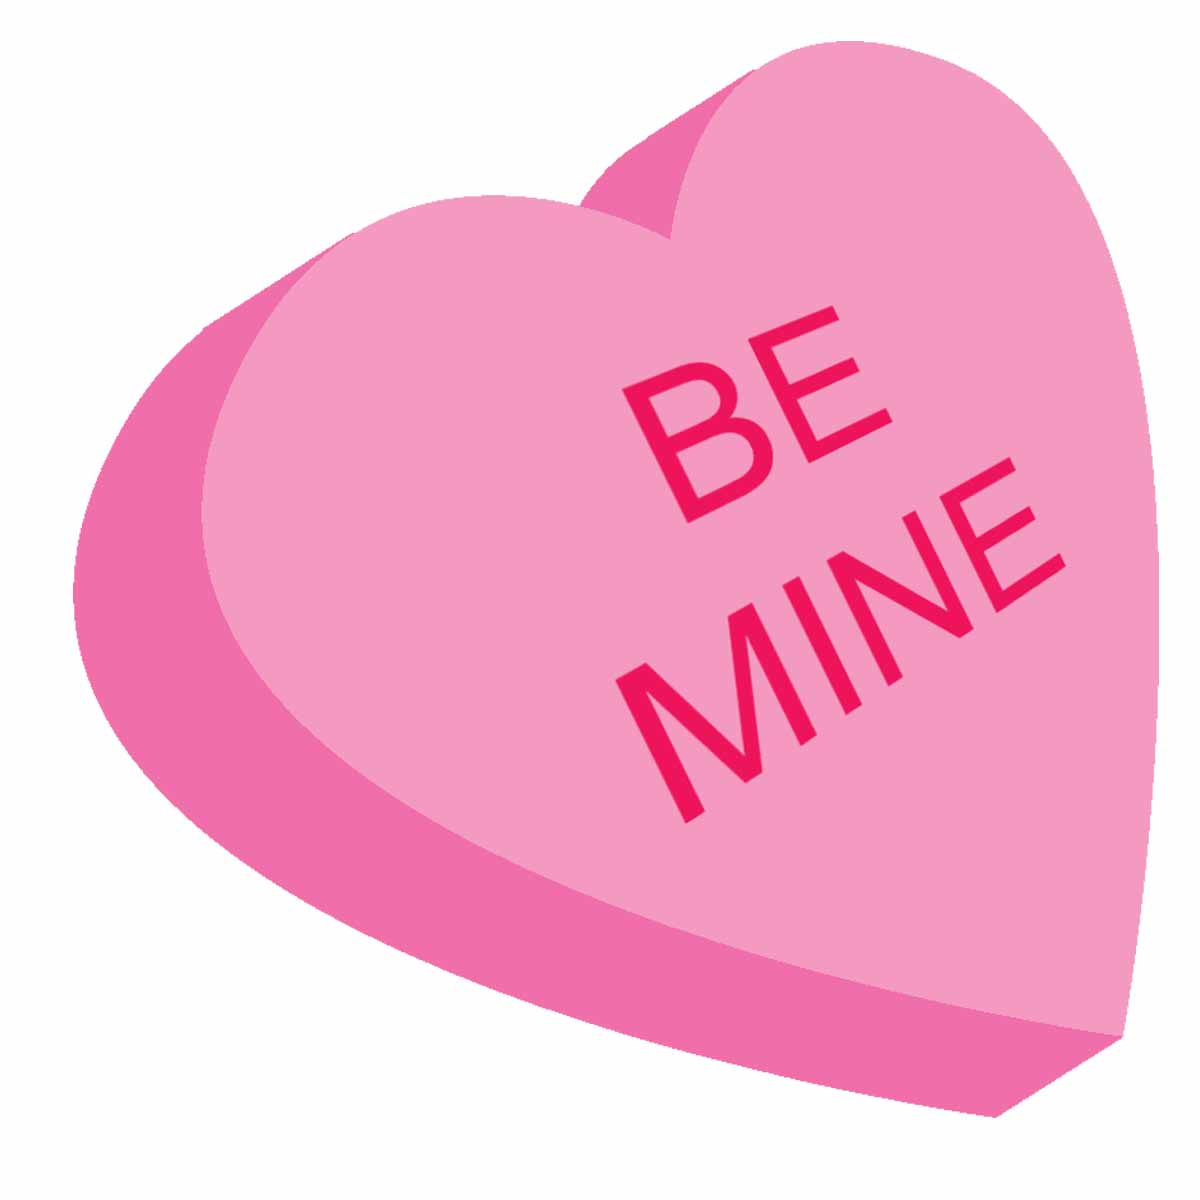 Saying clipart valentine candy #1